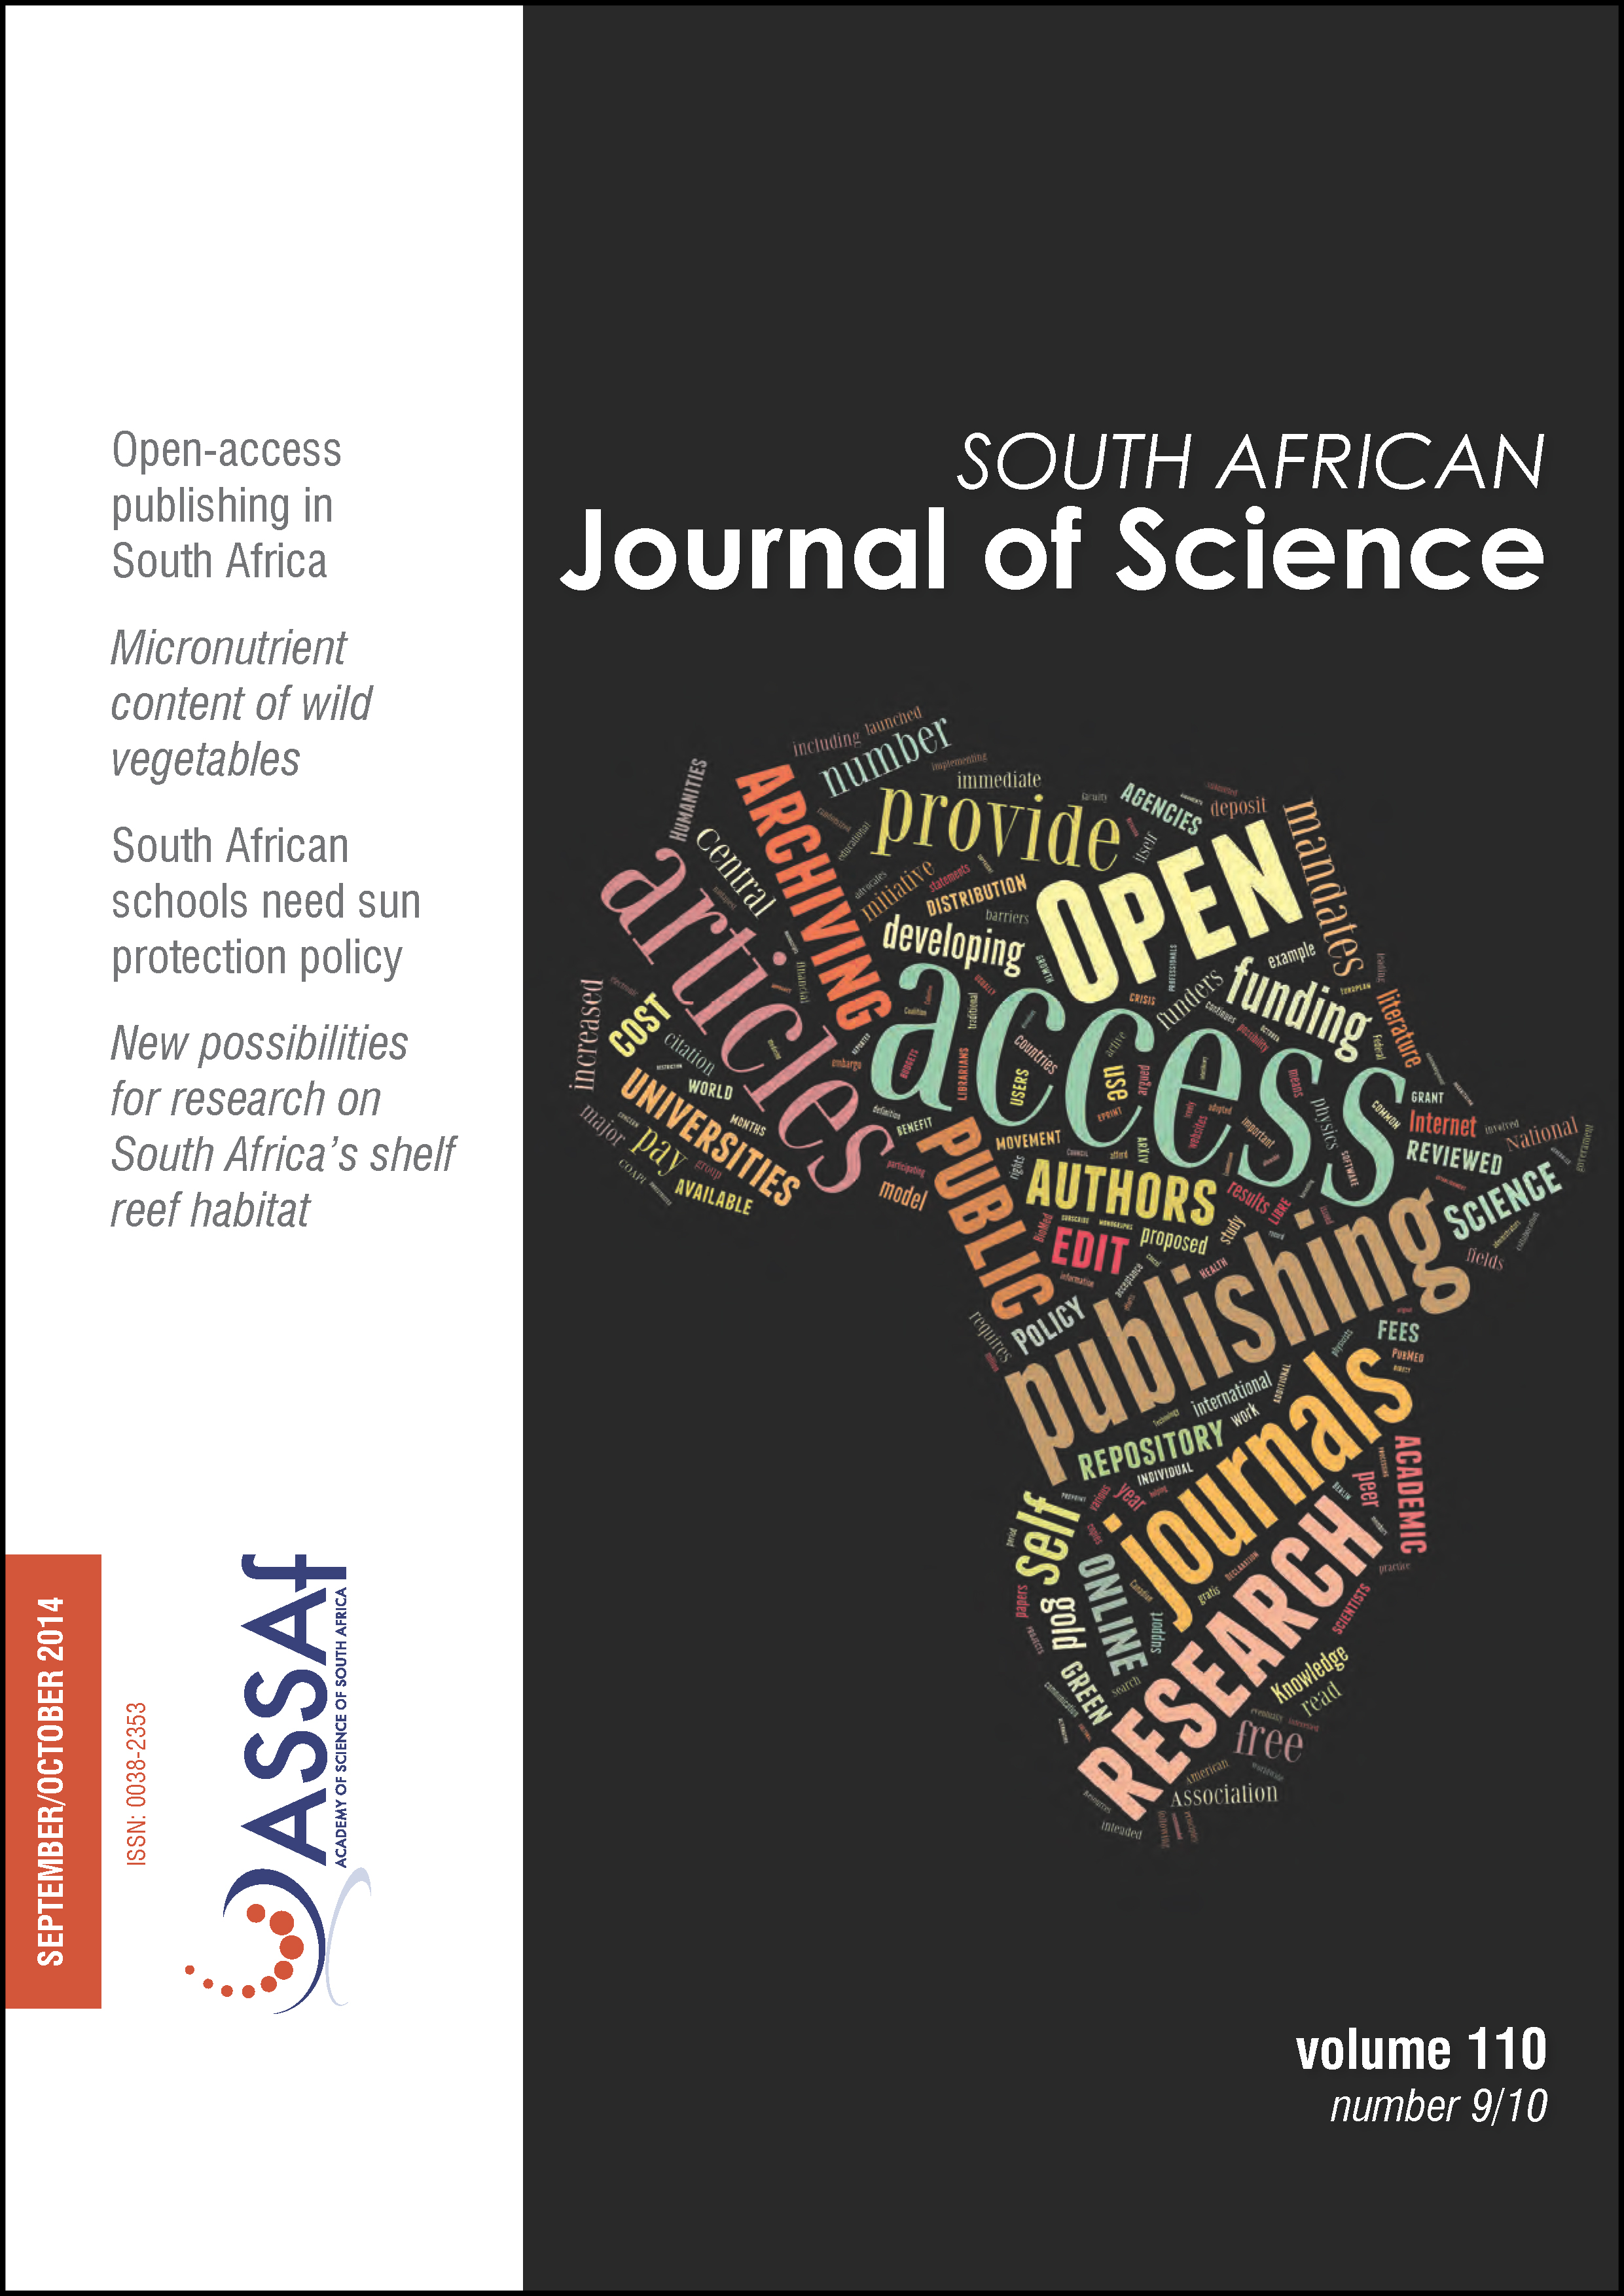 View Vol. 110 No. 9/10 (2014): South African Journal of Science